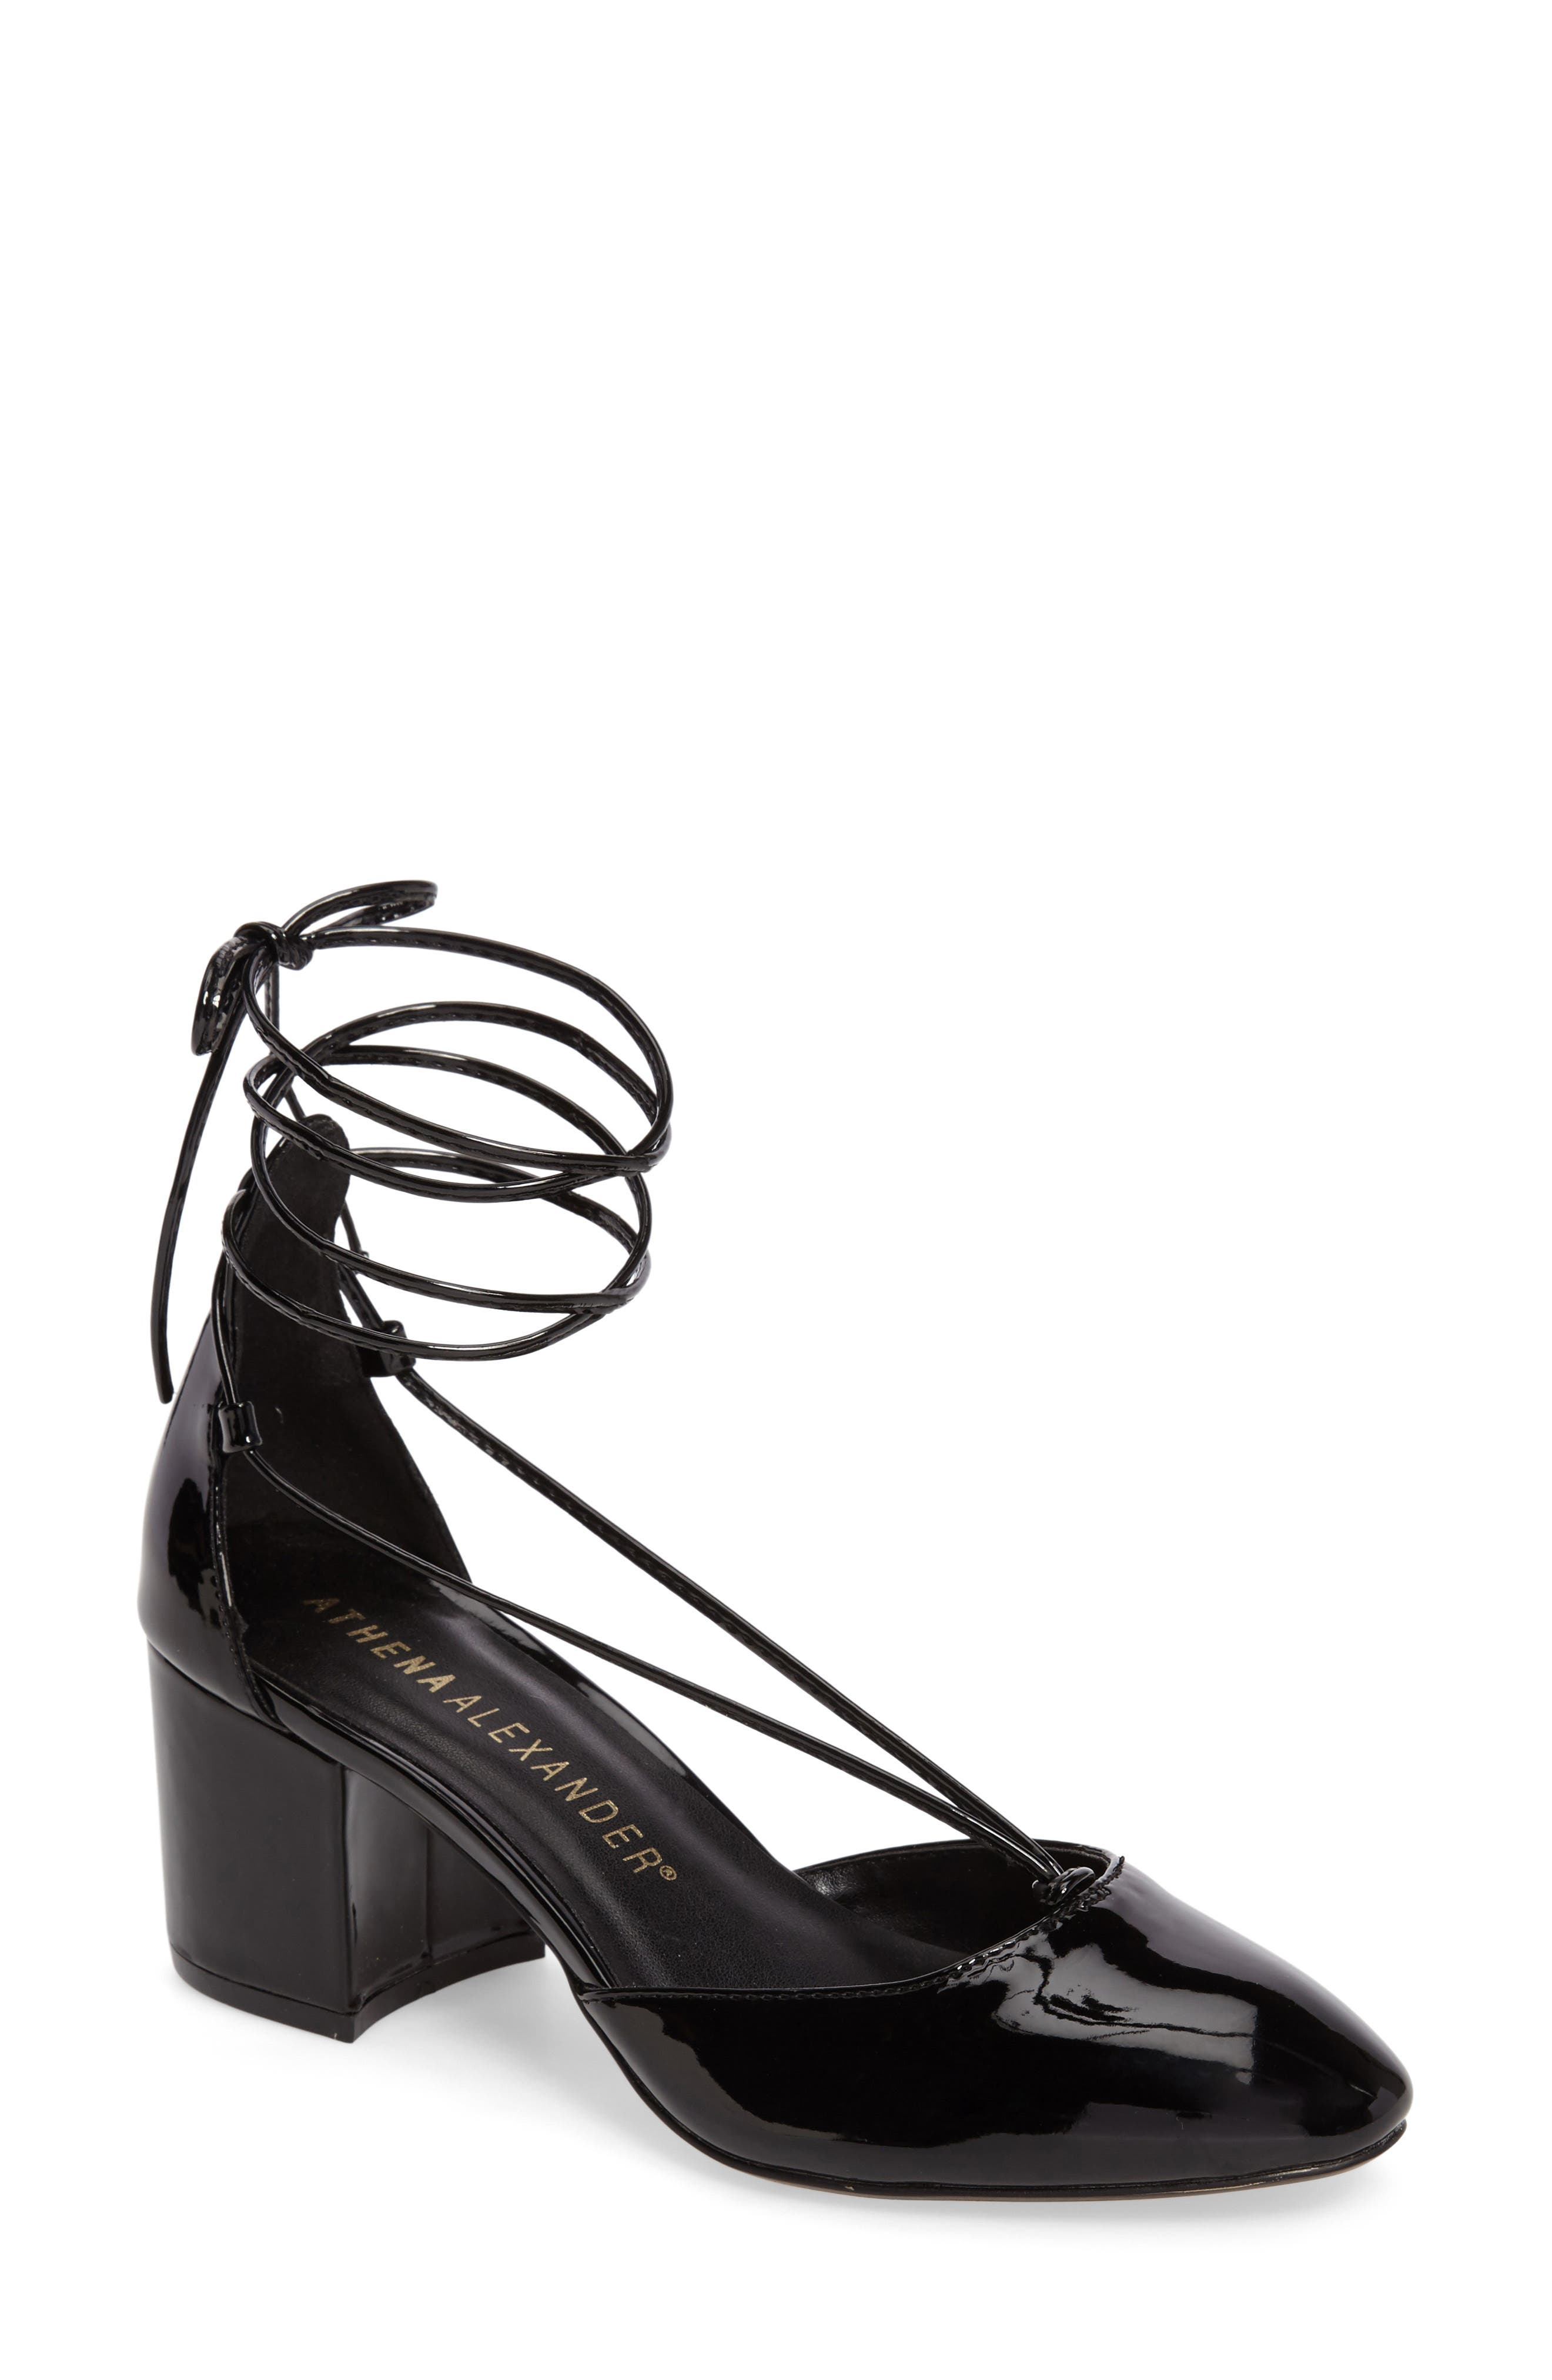 Athena Alexander Caprice Strappy d'Orsay Pump (Women)